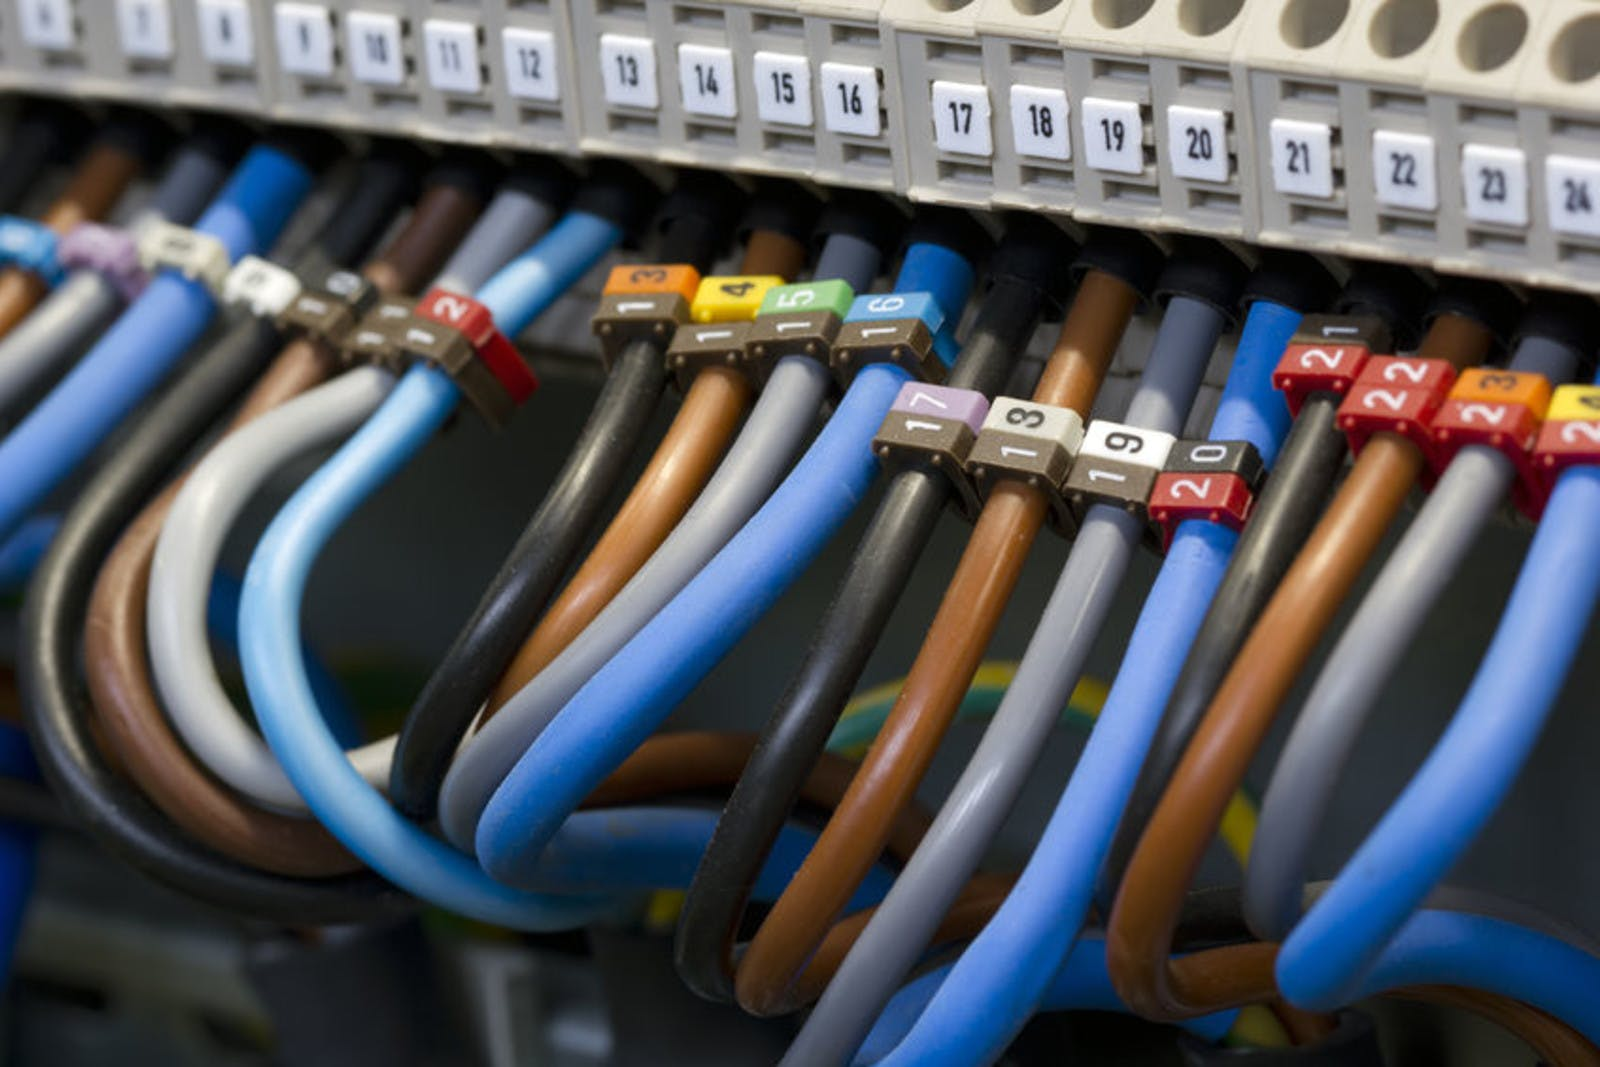 Cable, Cords & Wiring Services | It Support For Commercial ... on